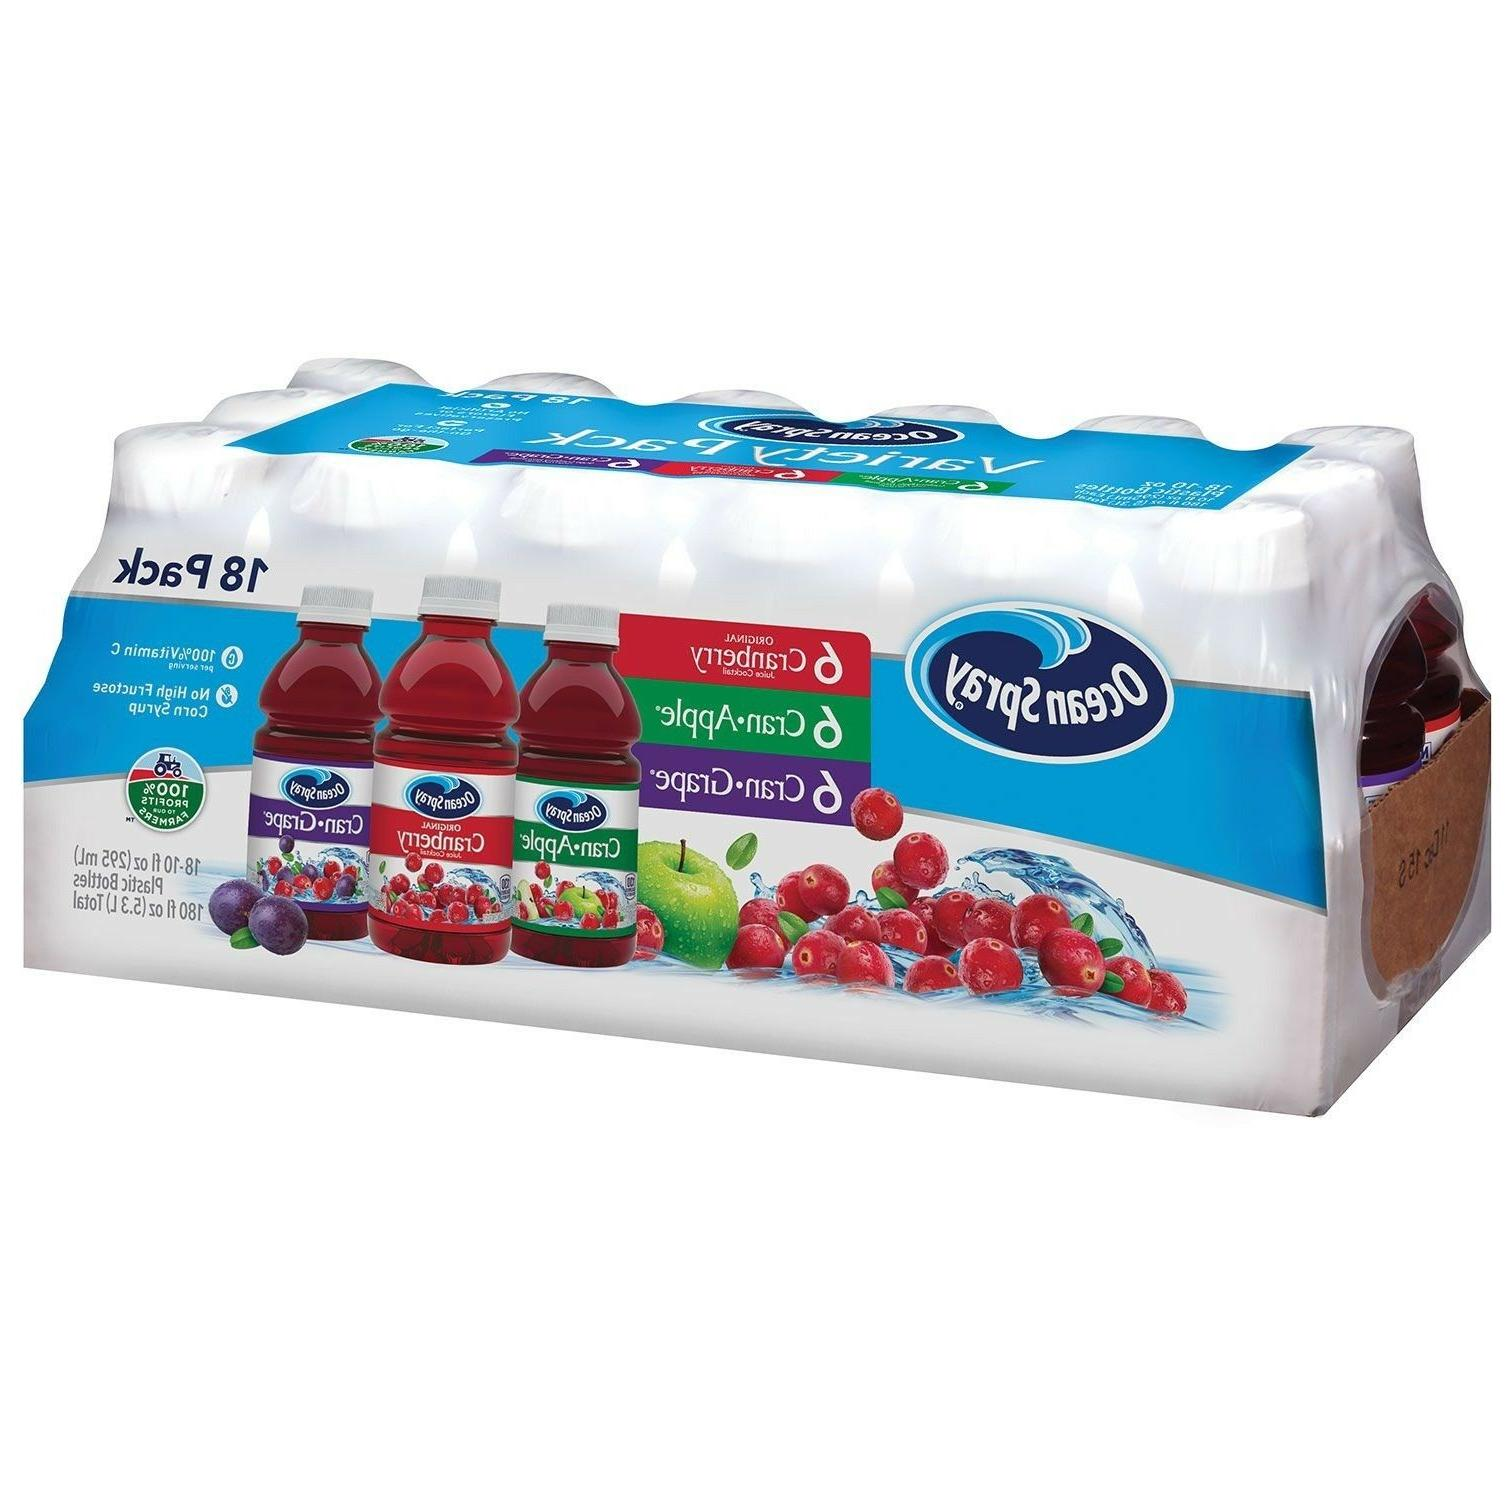 Ocean Spray Juice Drink Variety Pack  Brand new!